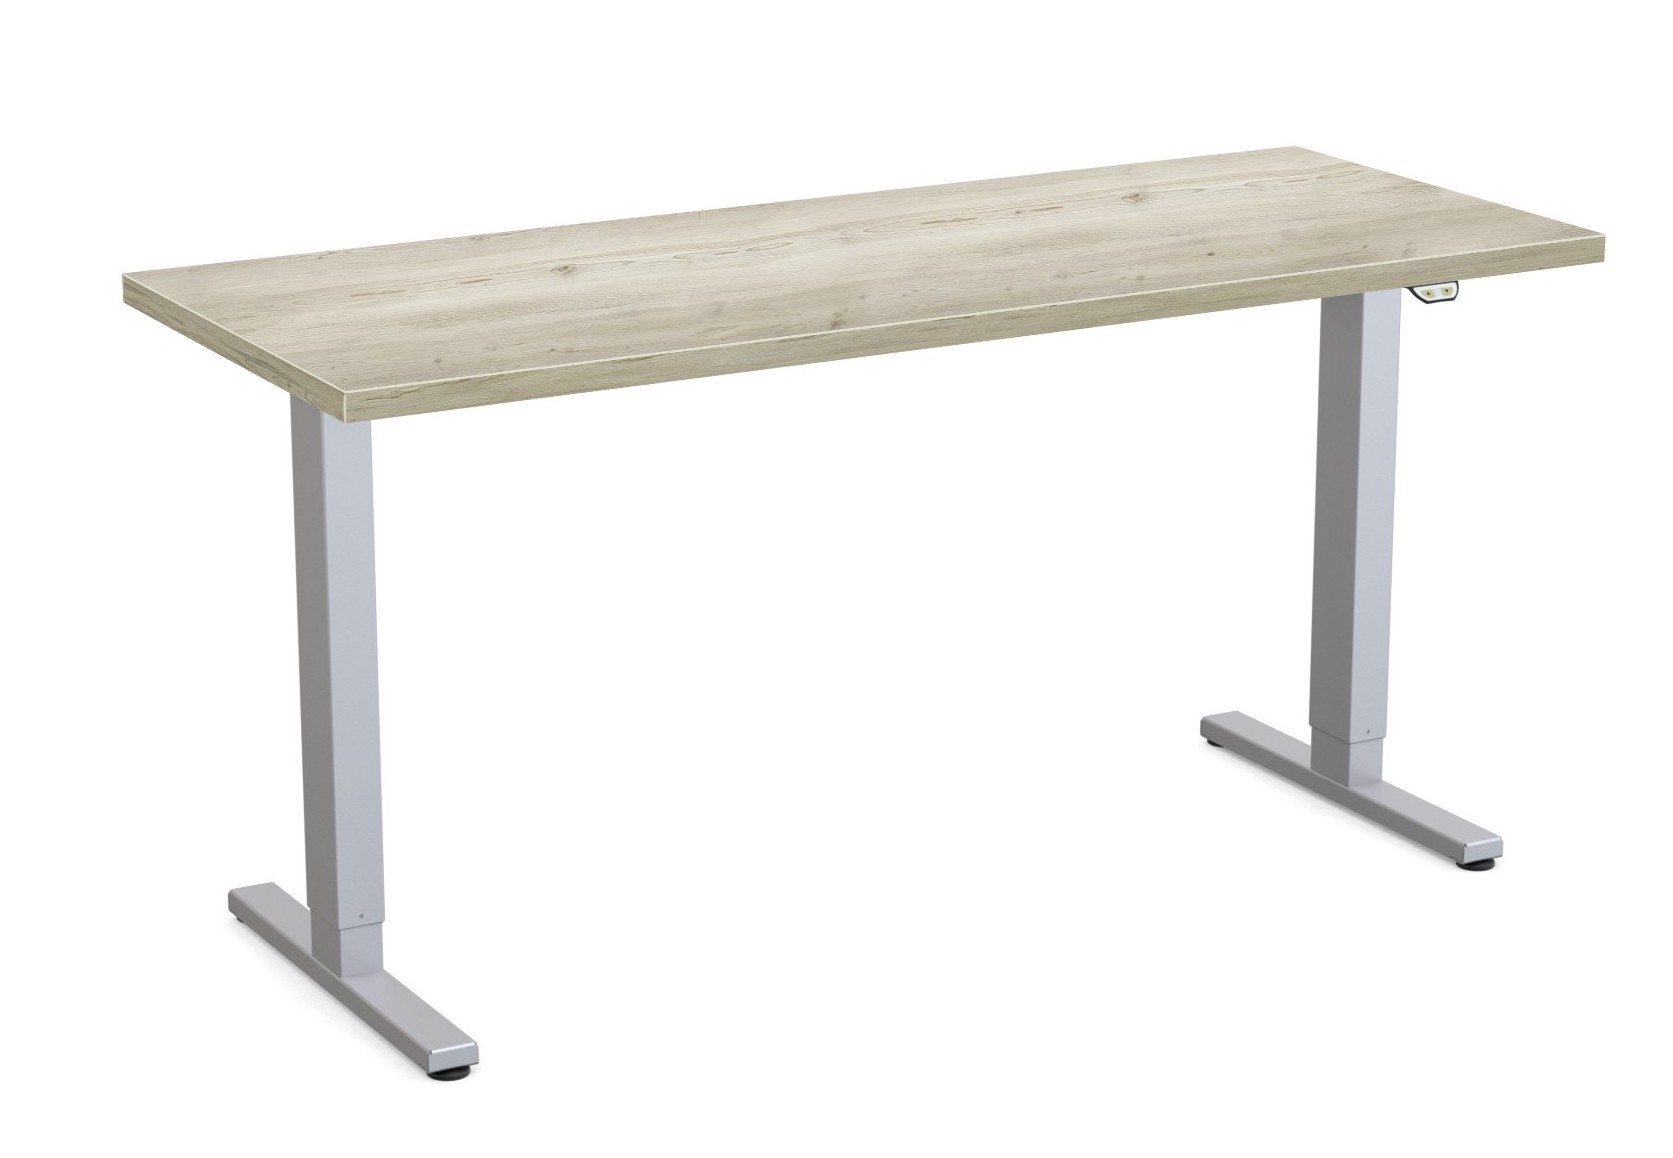 special-t liberty height adjustable table aged driftwood